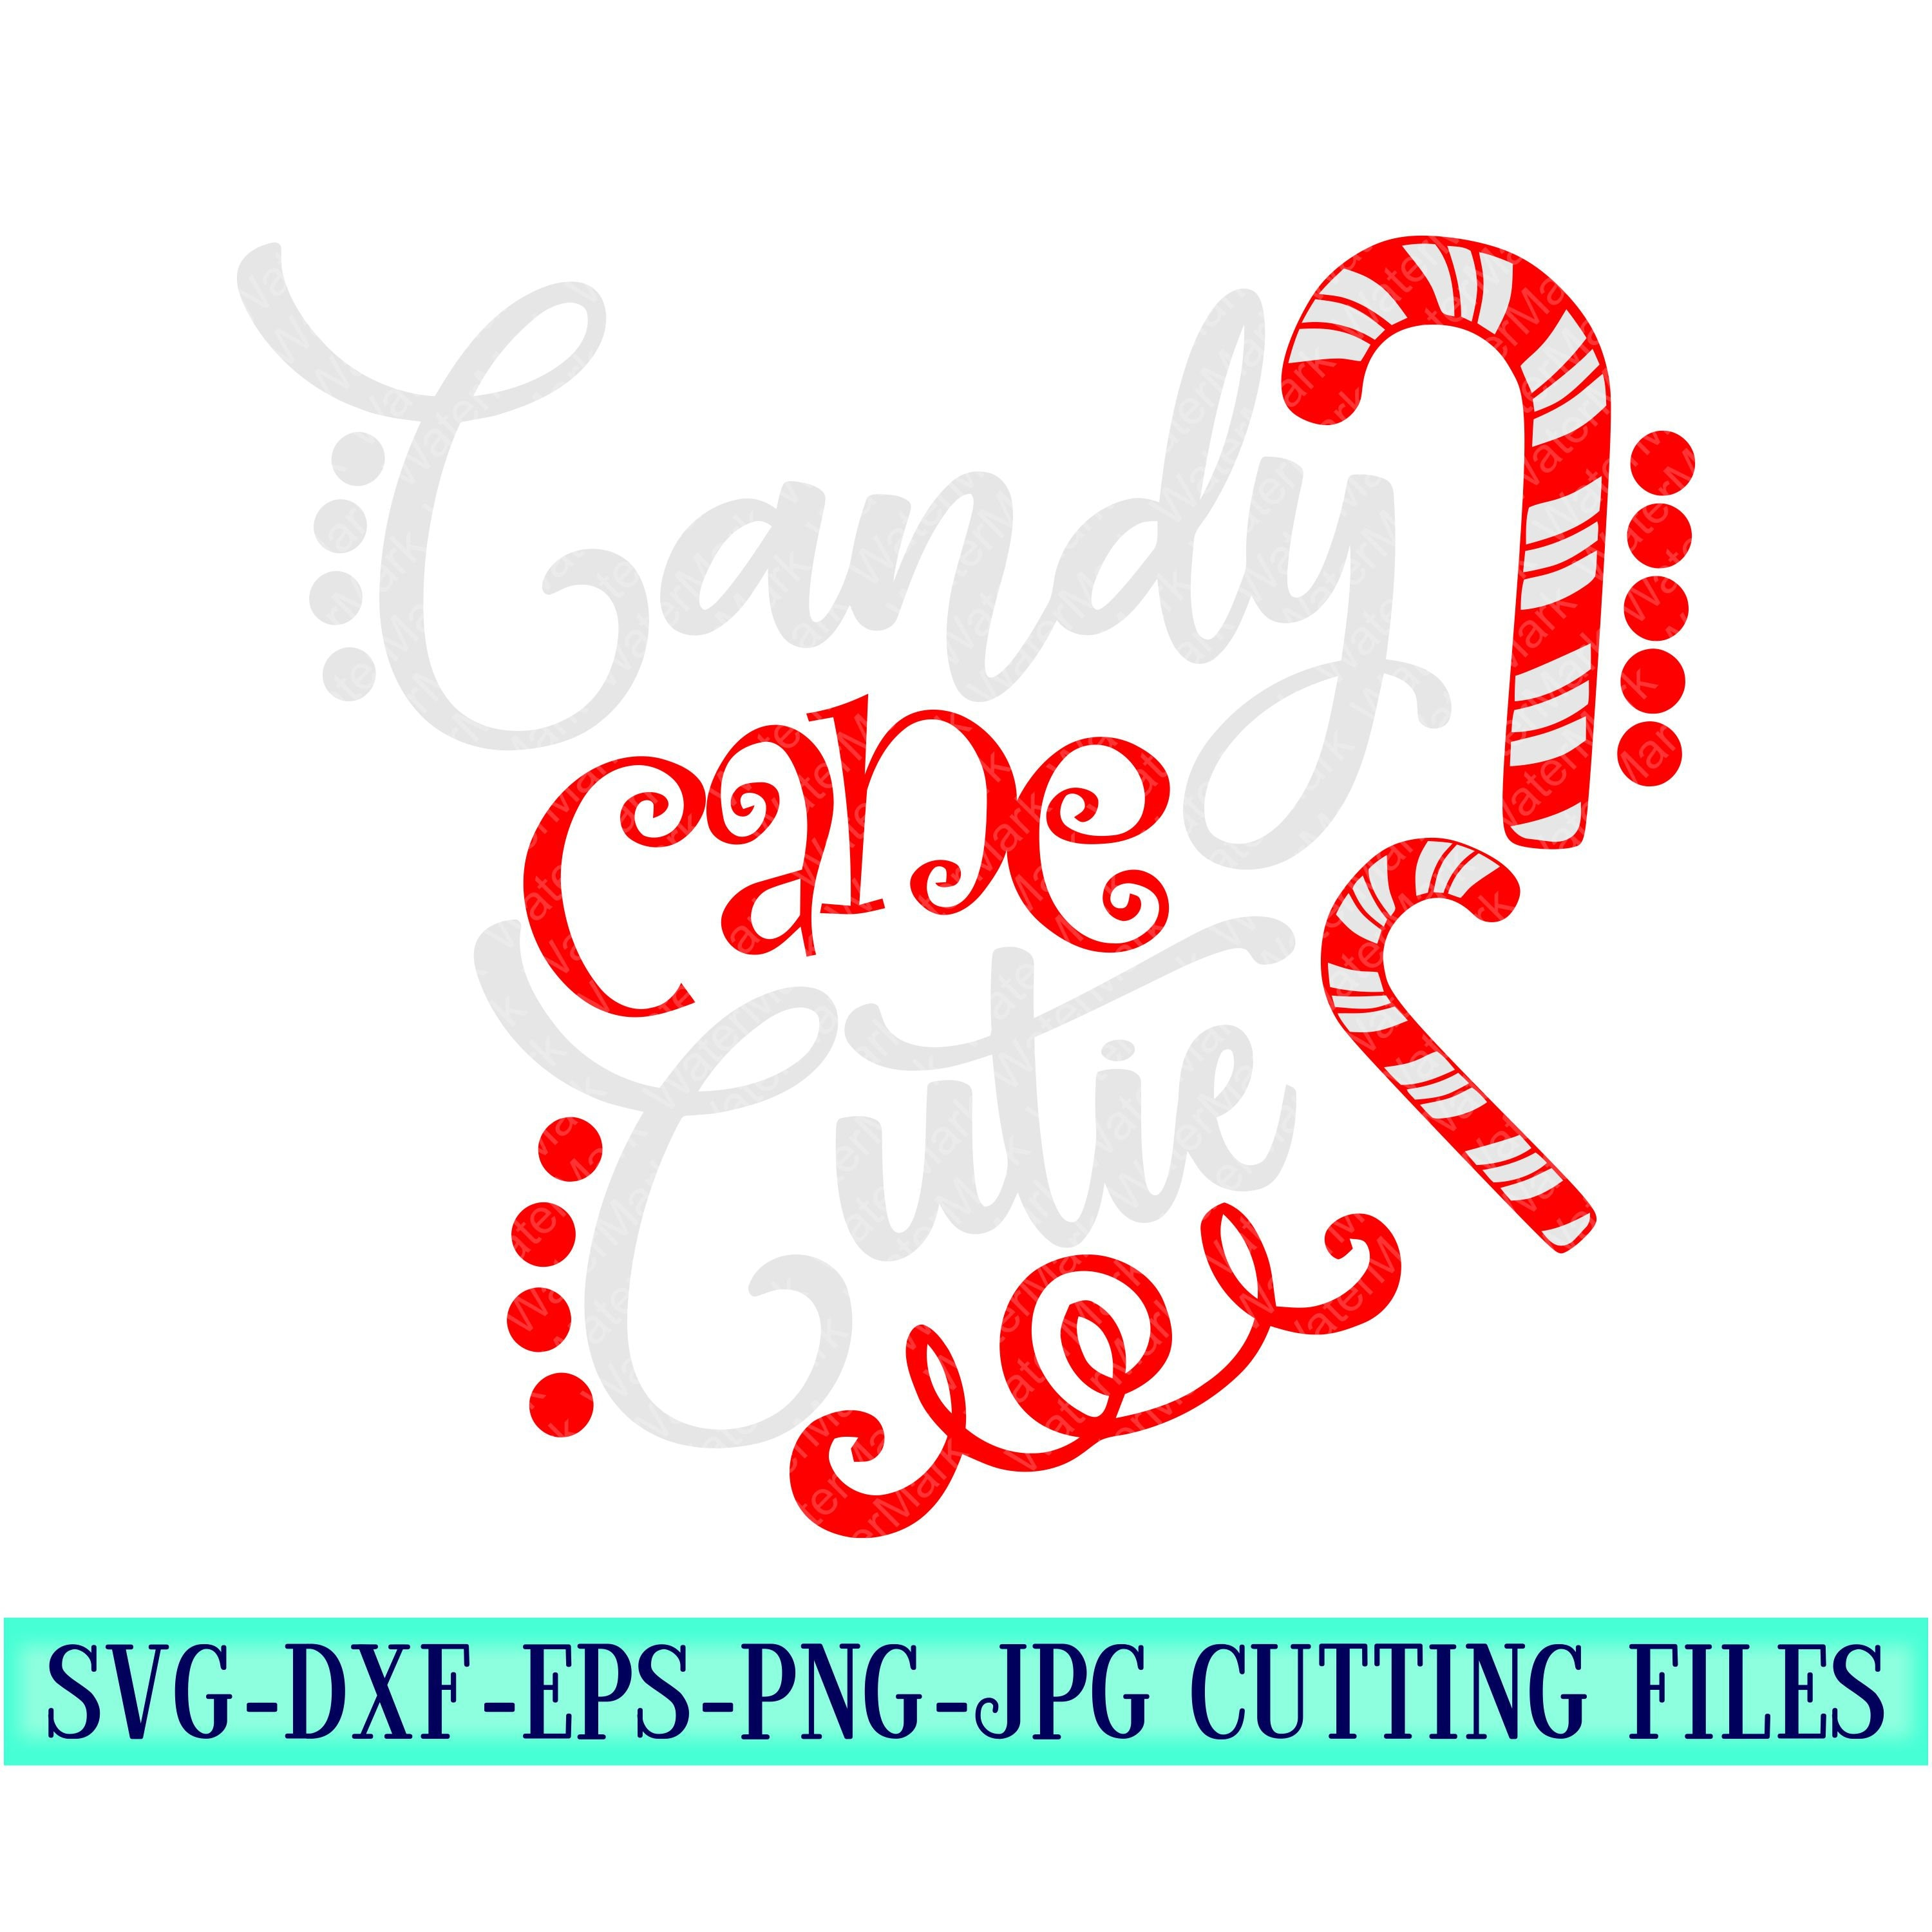 Candy Cane Candy Cane Svg Christmas Shirt Candycane Svg Christmas Svg Designs Christmas Cut Files Christmas Svg Design Christmas Cut Files